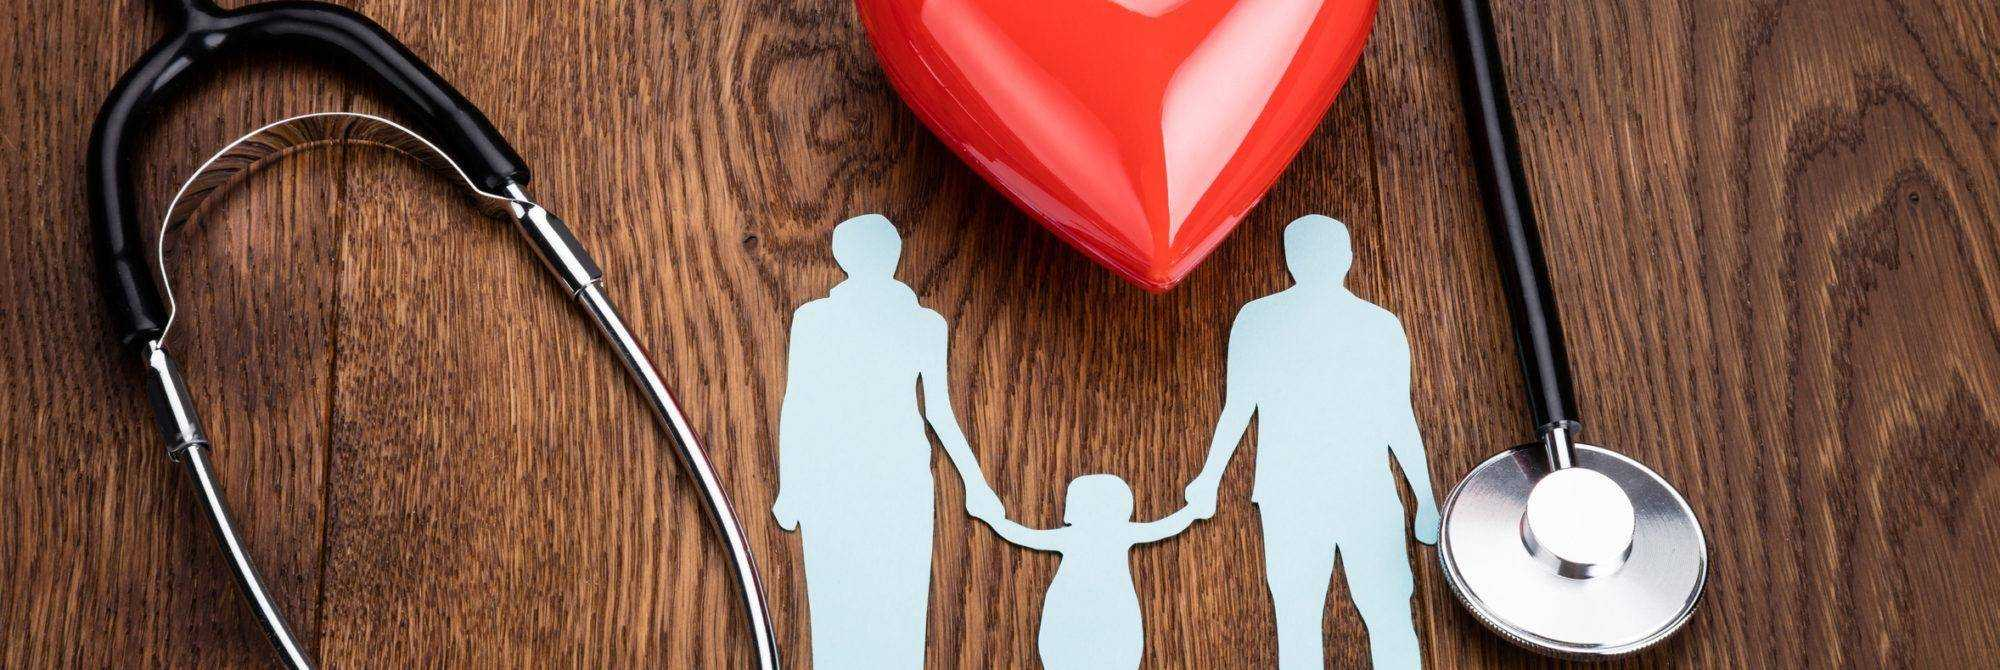 High Angle View Of Red Heart And A Stethoscope With Family Papercut On Wooden Desk